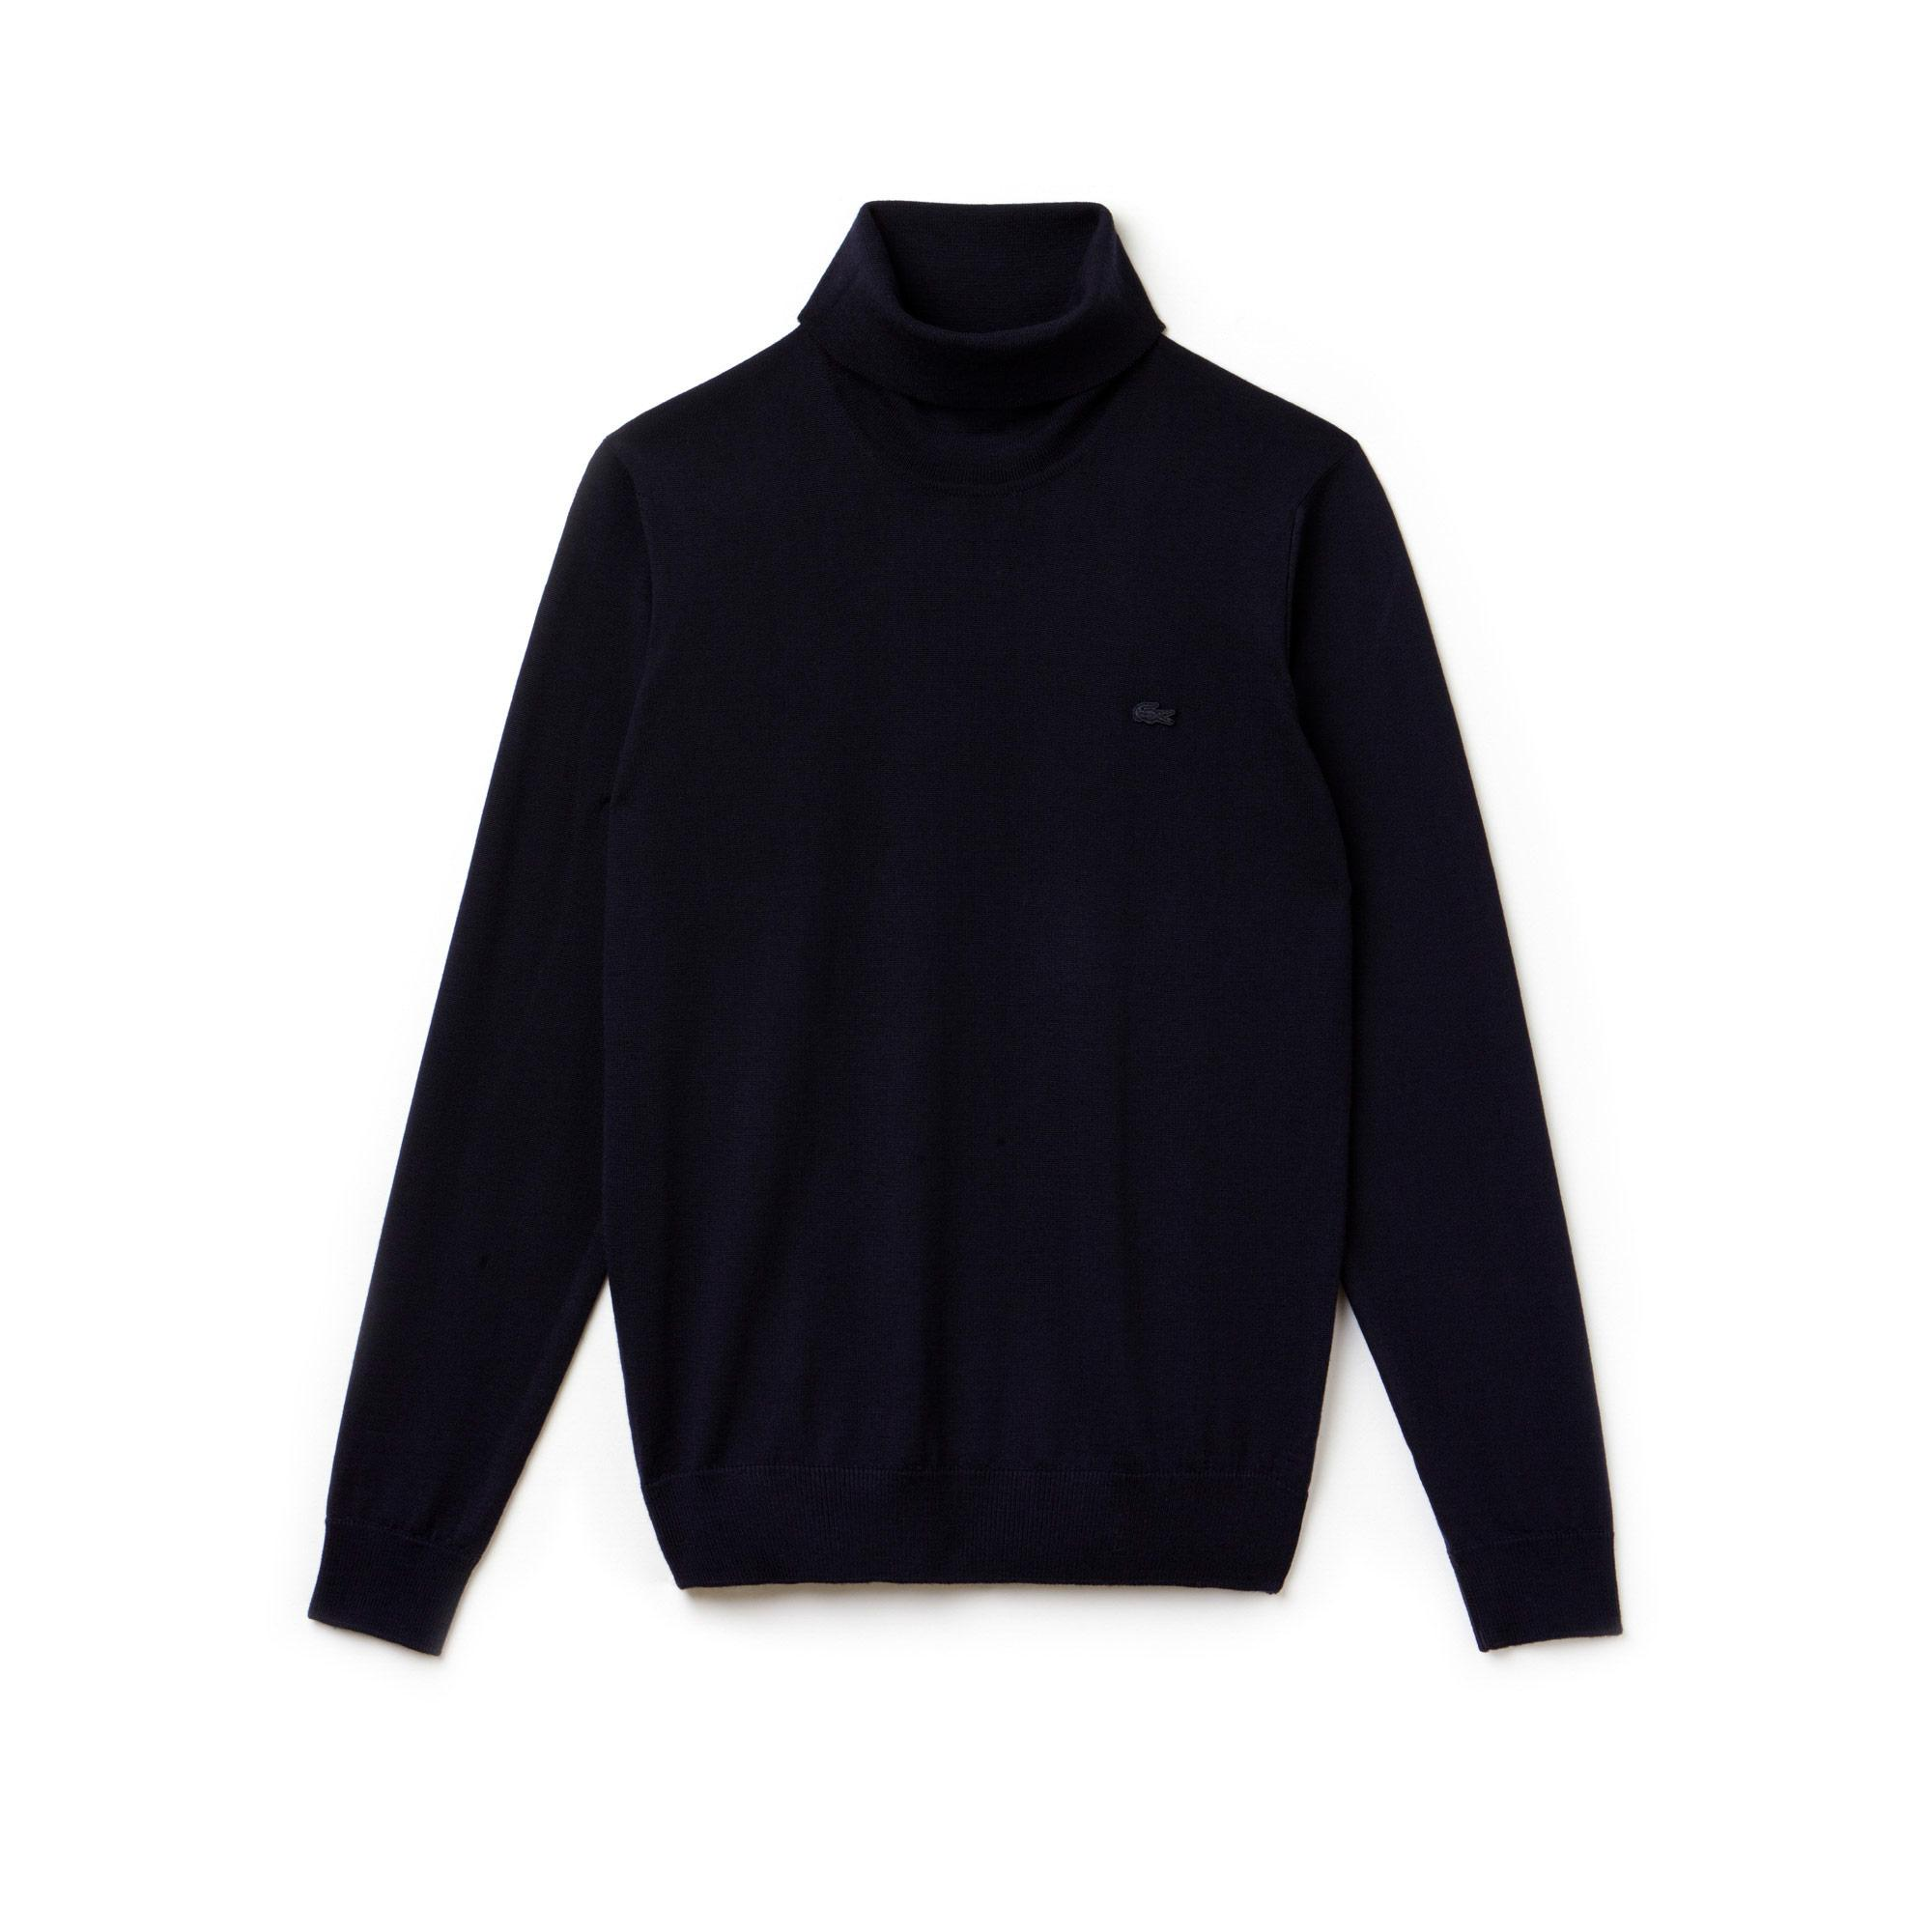 Lacoste Men's Turtleneck Wool Jersey Sweater